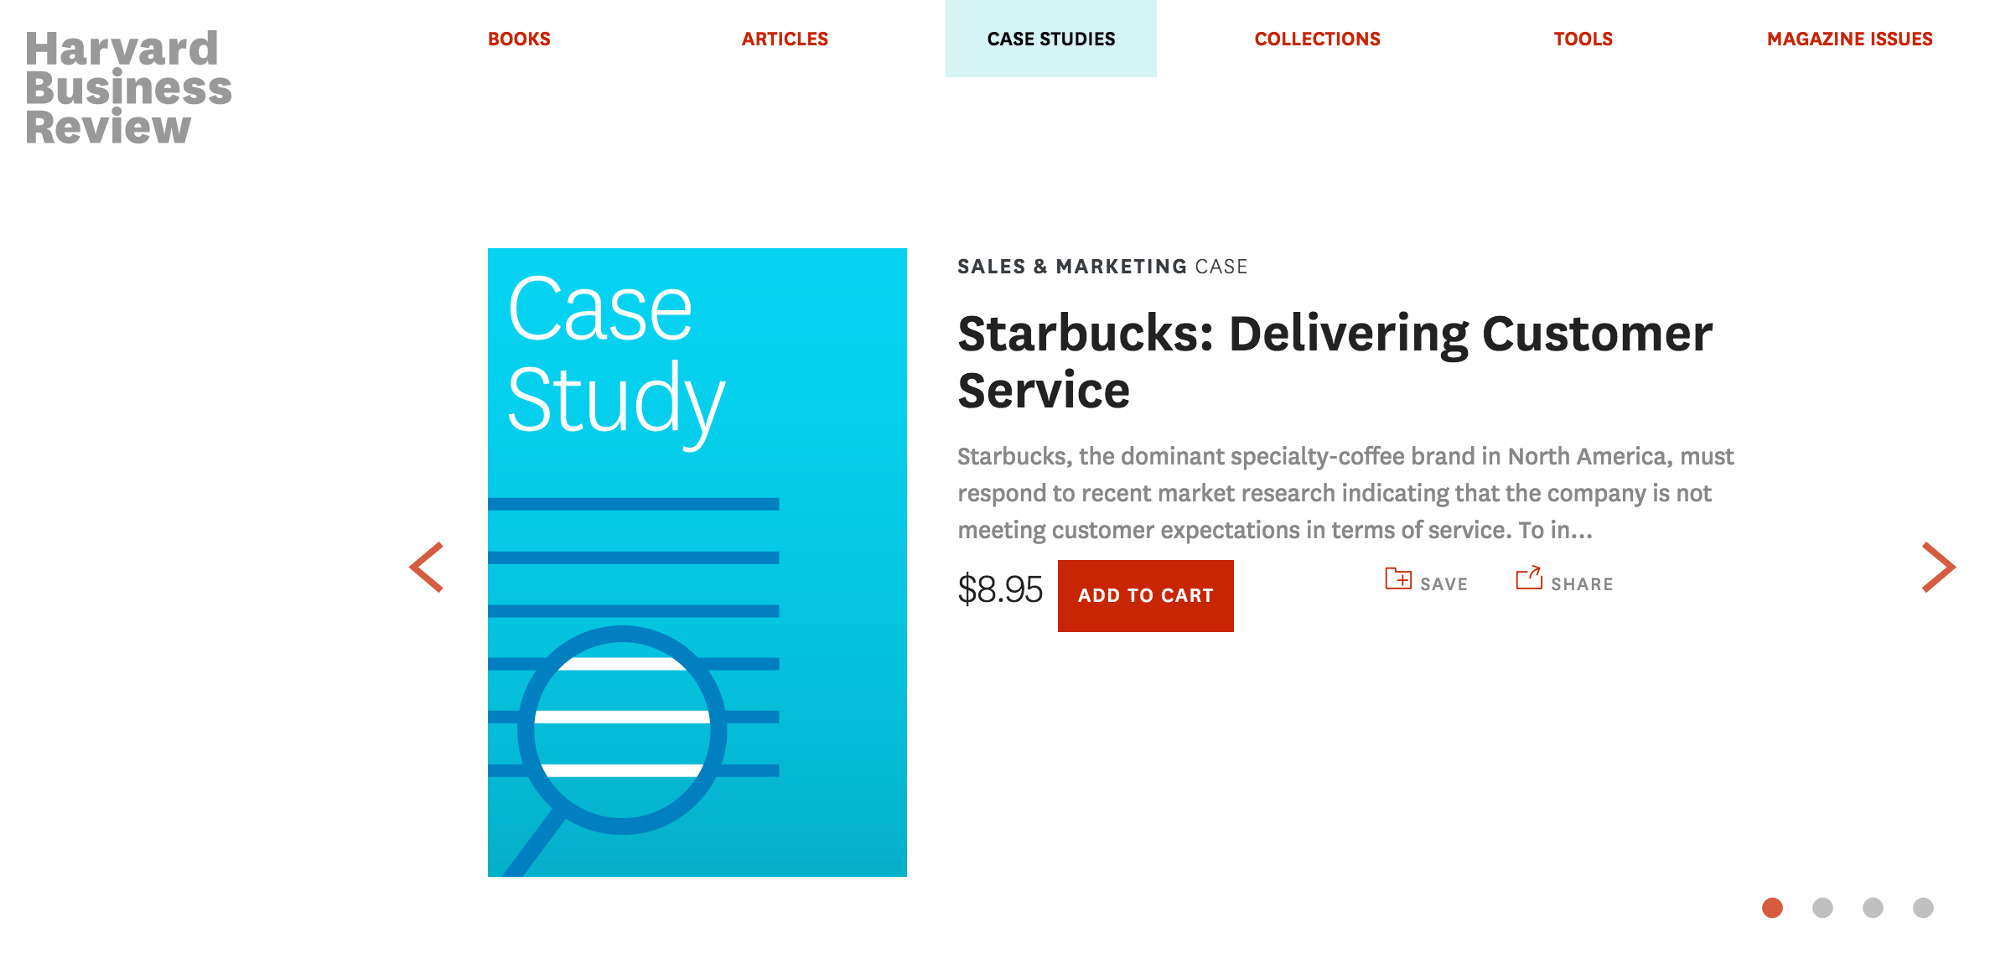 starbucks delivering customer service harvard case study analysis Starbucks coffee (starbucks corporation) swot analysis (strengths, weaknesses, opportunities, threats) is in this coffee & coffeehouse business internal & external factors case study.